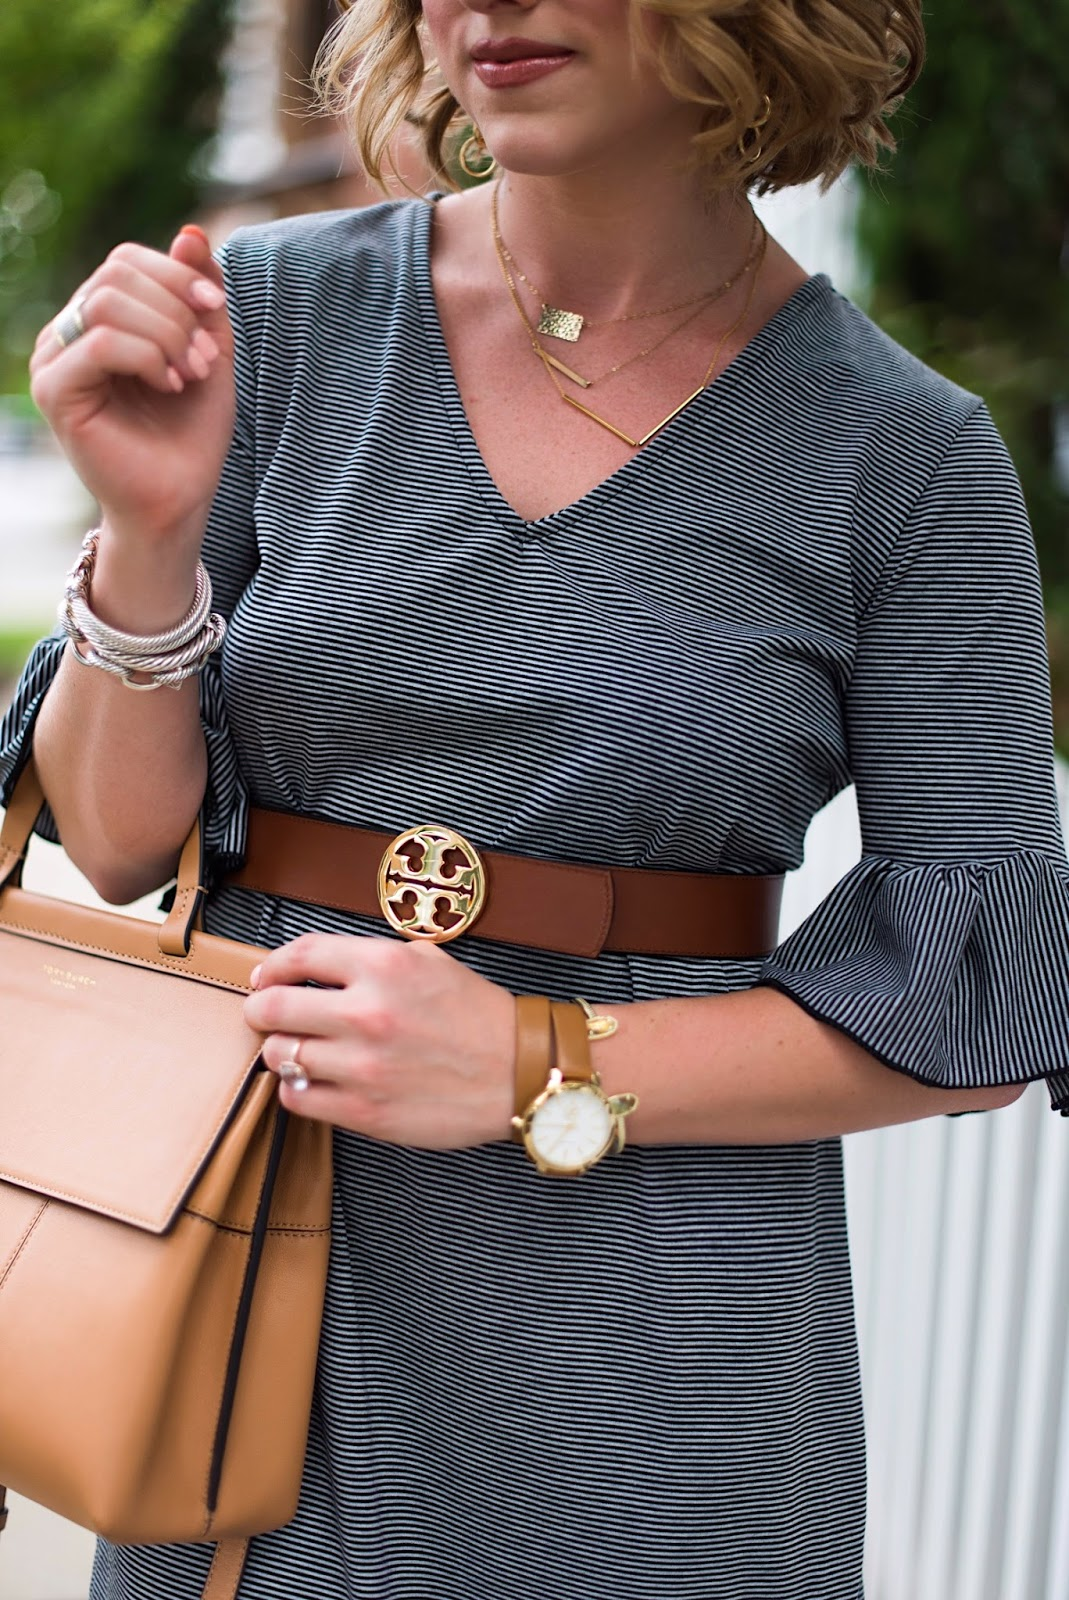 Tory Burch Belt - Click through to see more on Something Delightful Blog!